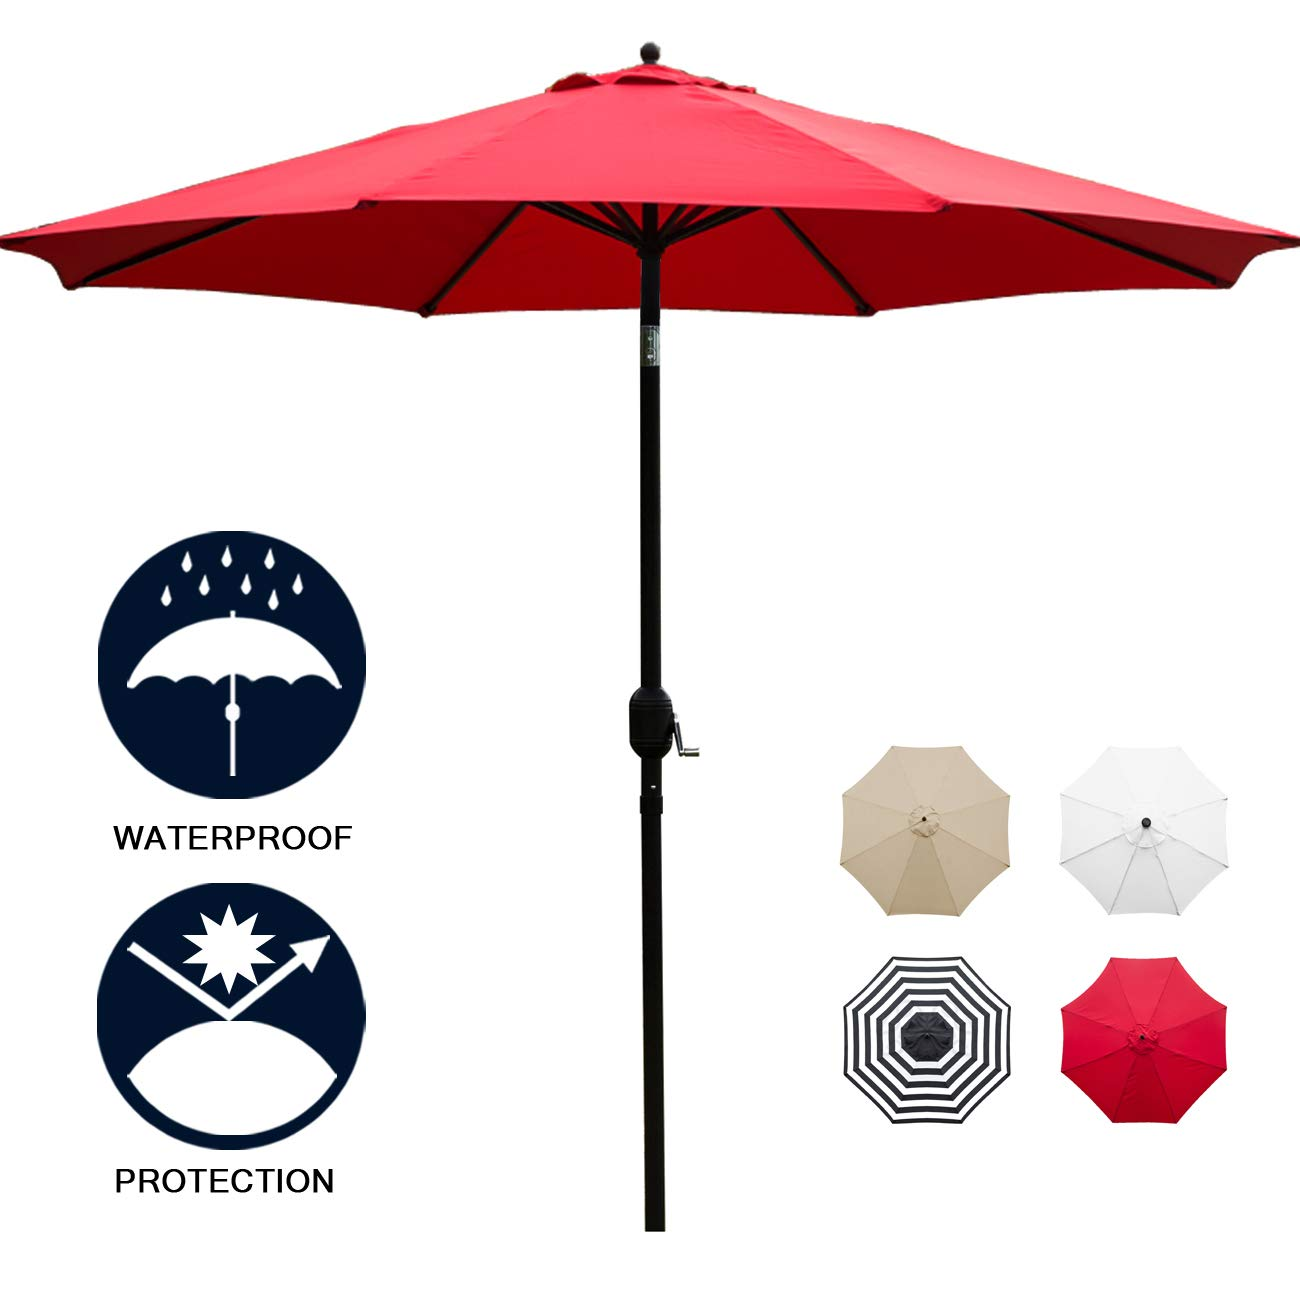 Sunnyglade 11Ft Patio Umbrella Garden Canopy Outdoor Table Market Umbrella with Tilt and Crank (Red) by Sunnyglade